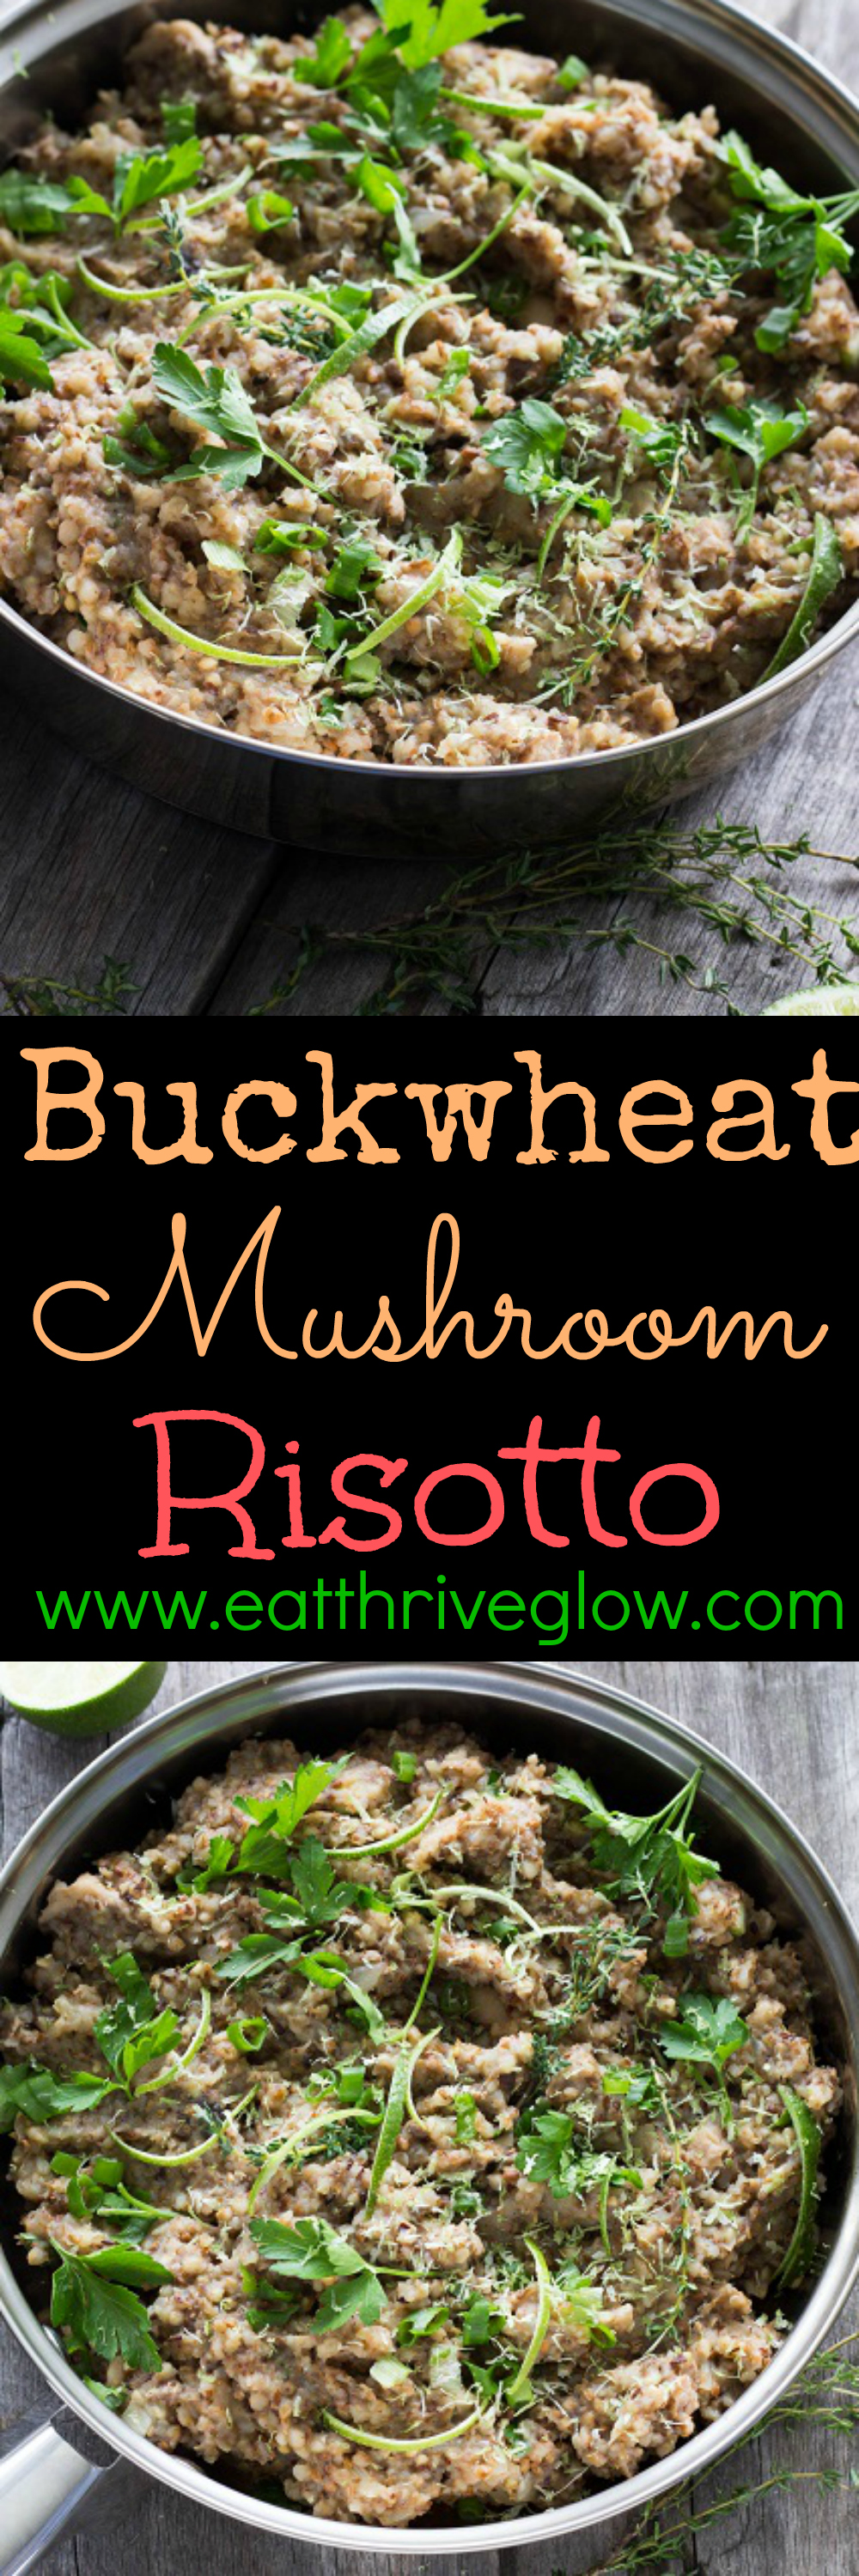 Buckwheat Mushroom Risotto - Eat Thrive Glow